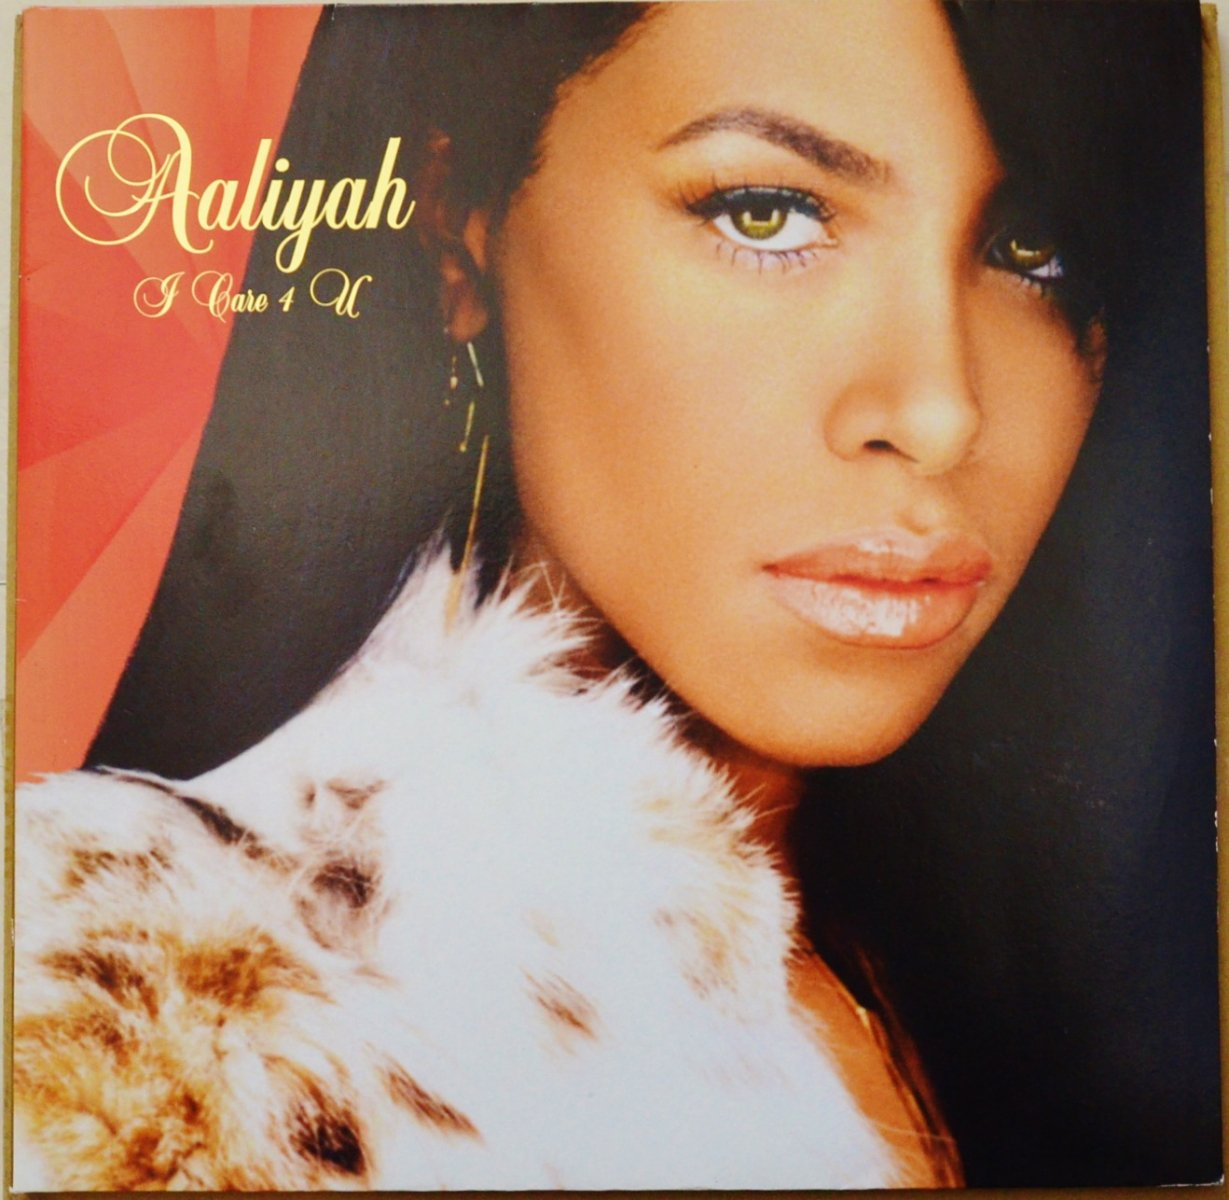 AALIYAH ‎/ I CARE 4 U (2LP)